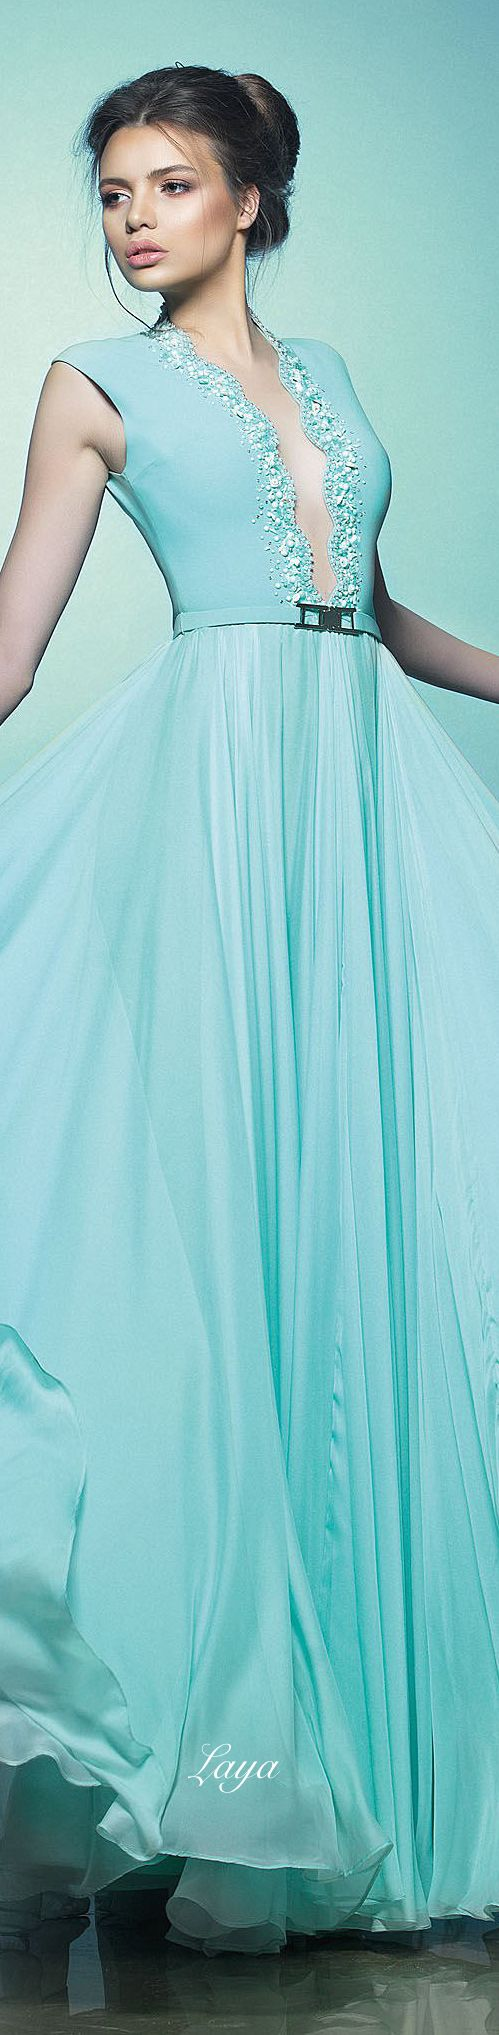 Saiid Kobeisy   Fashion and glamour   the mother of bride or groom   The color…